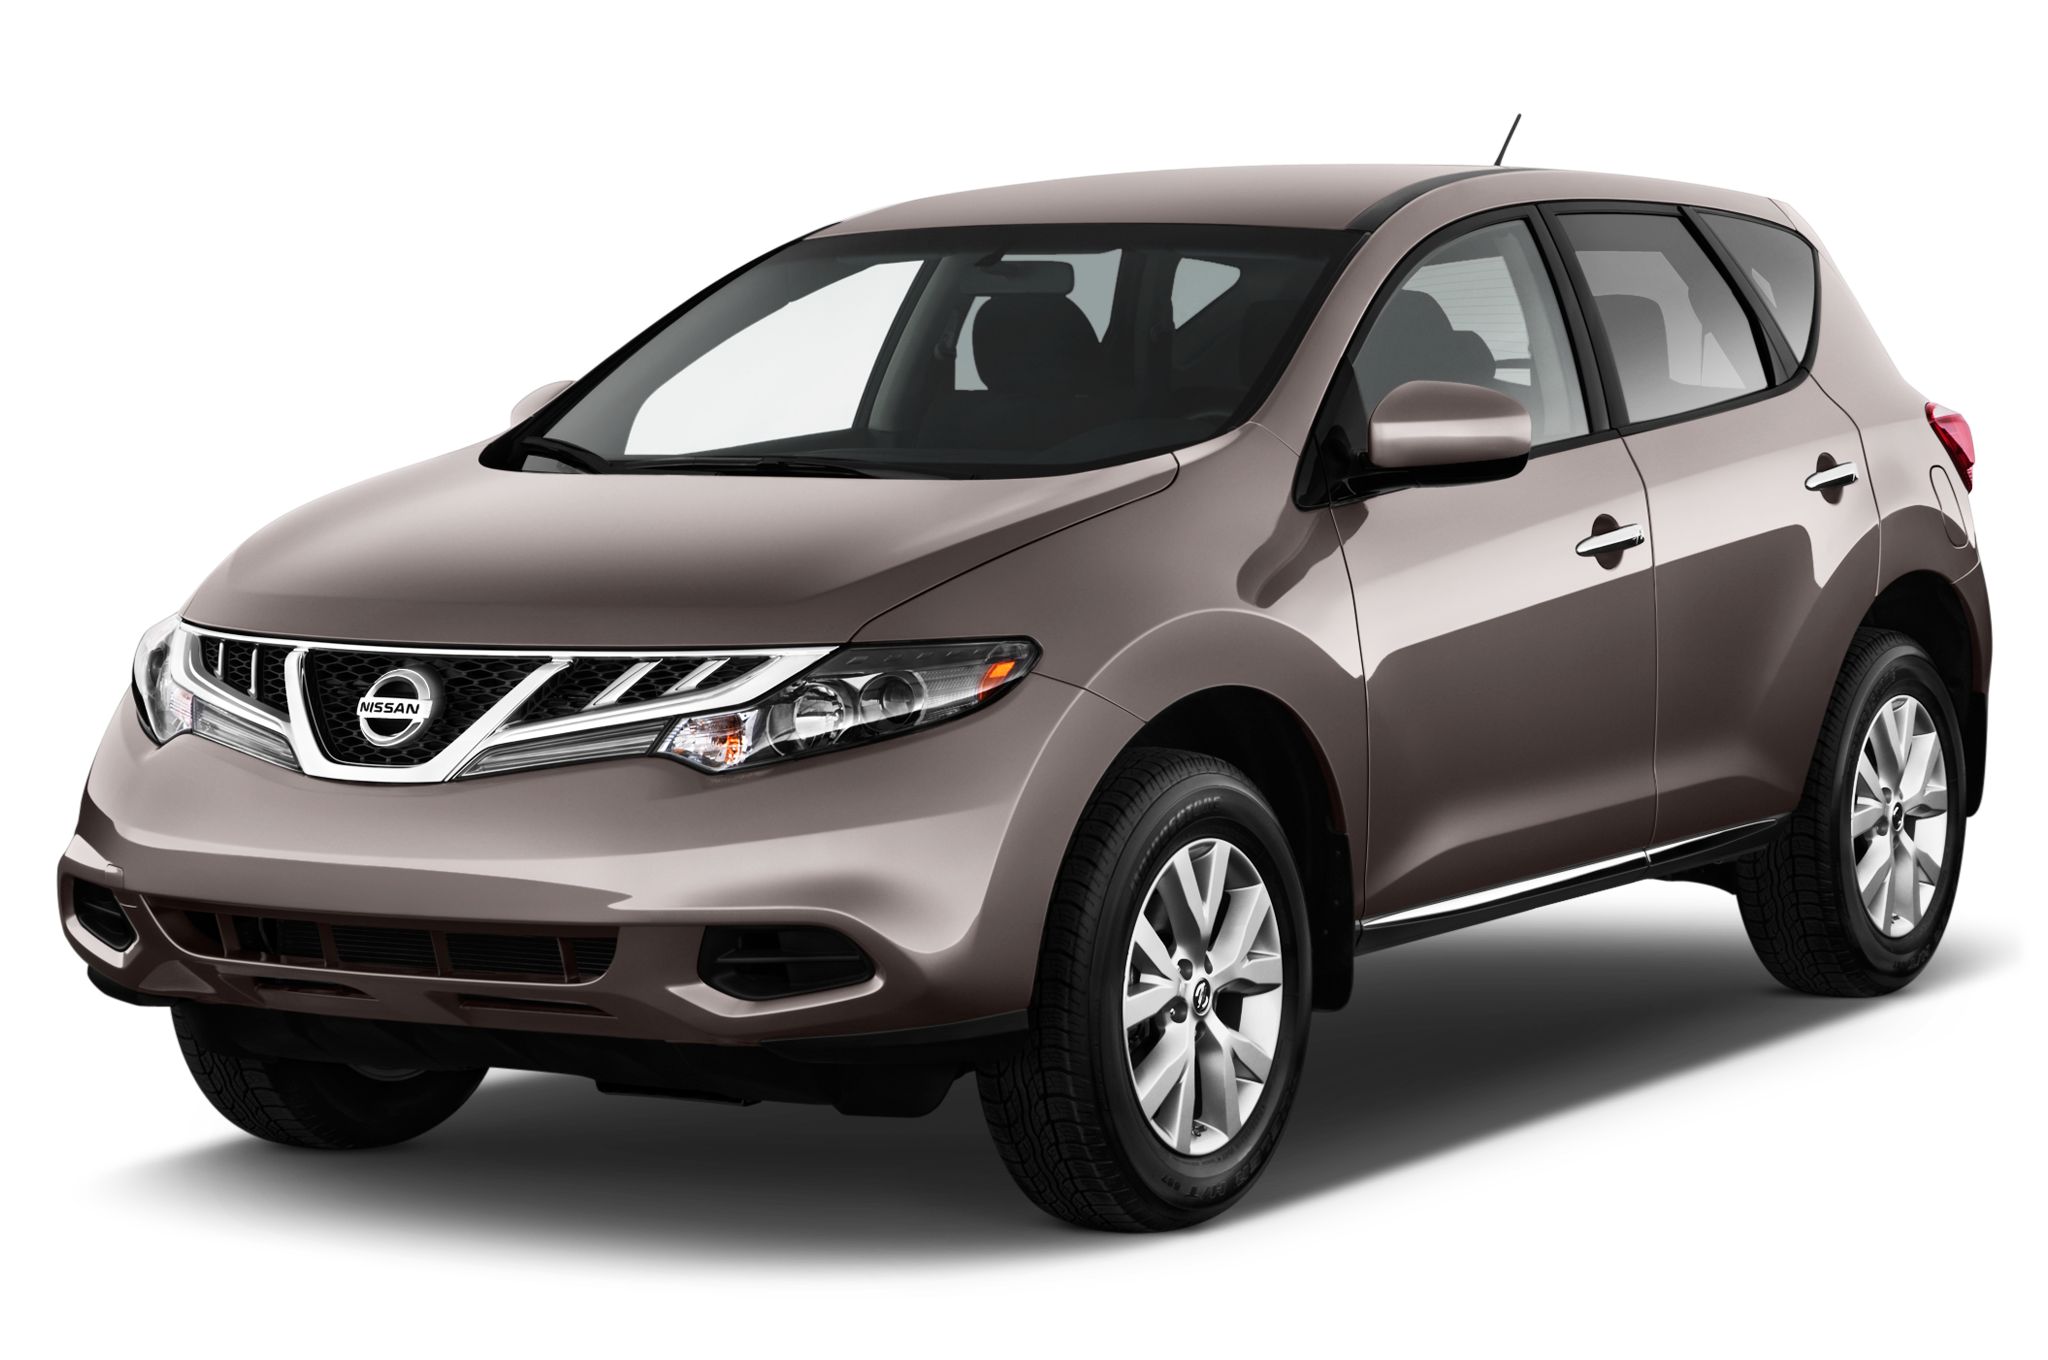 2013 nissan murano reviews and rating motor trend rh motortrend com 2012 murano service manual 2013 nissan murano service manual